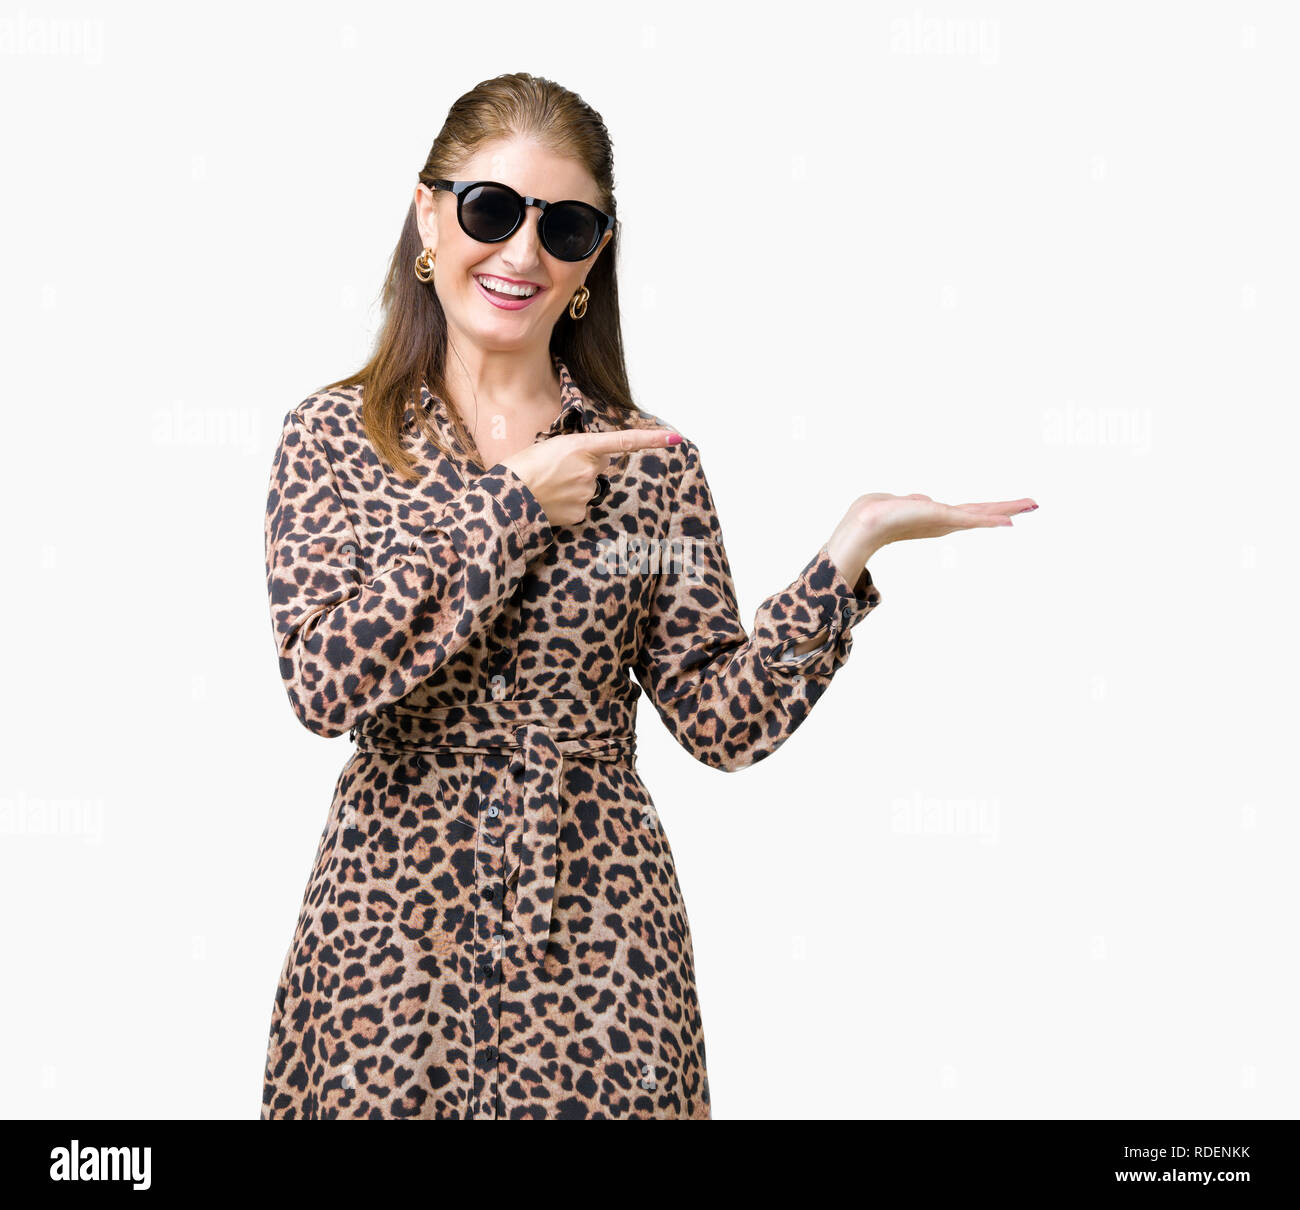 636788c280 Middle age mature rich woman wearing sunglasses and leopard dress over  isolated background amazed and smiling